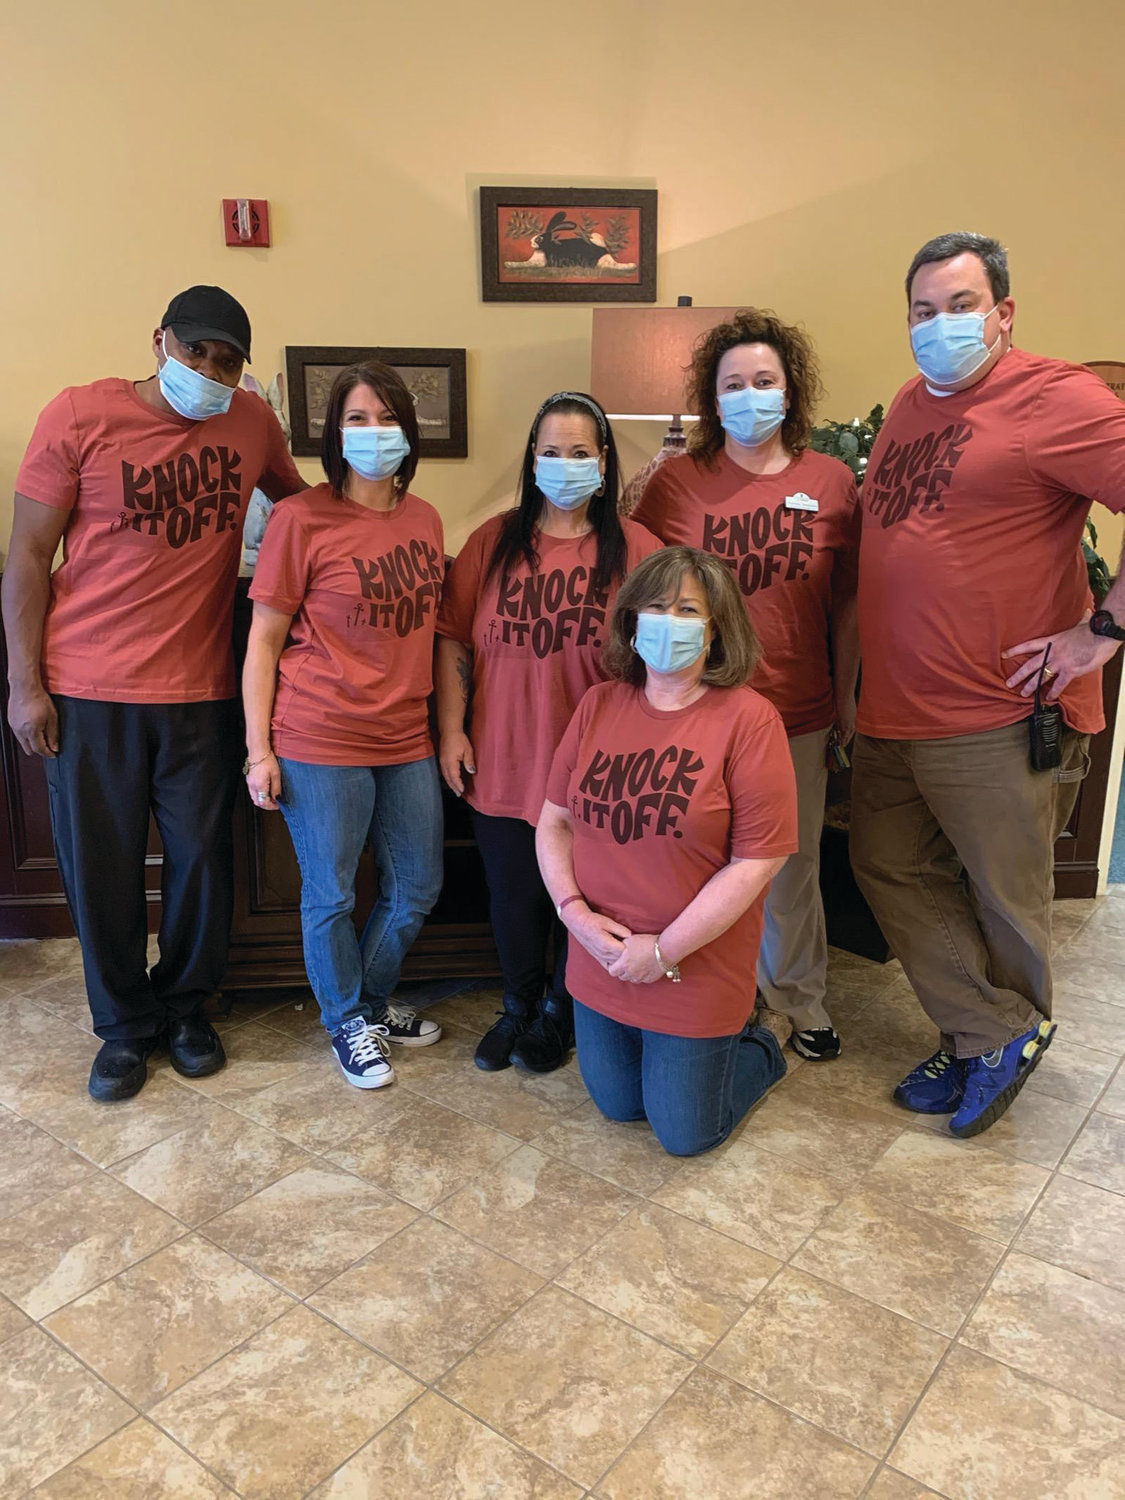 GRACE'S GREAT GANG: Maryann Grace, executive director at The Bridge at Cherry Hill, is backed by staffers Marvin Carter, Jen Burns, Carla Rasposo, Rhonda Simmons and Rick Bigelli who are proud of their accomplishment of keeping residents free from coronavirus during the current pandemic.